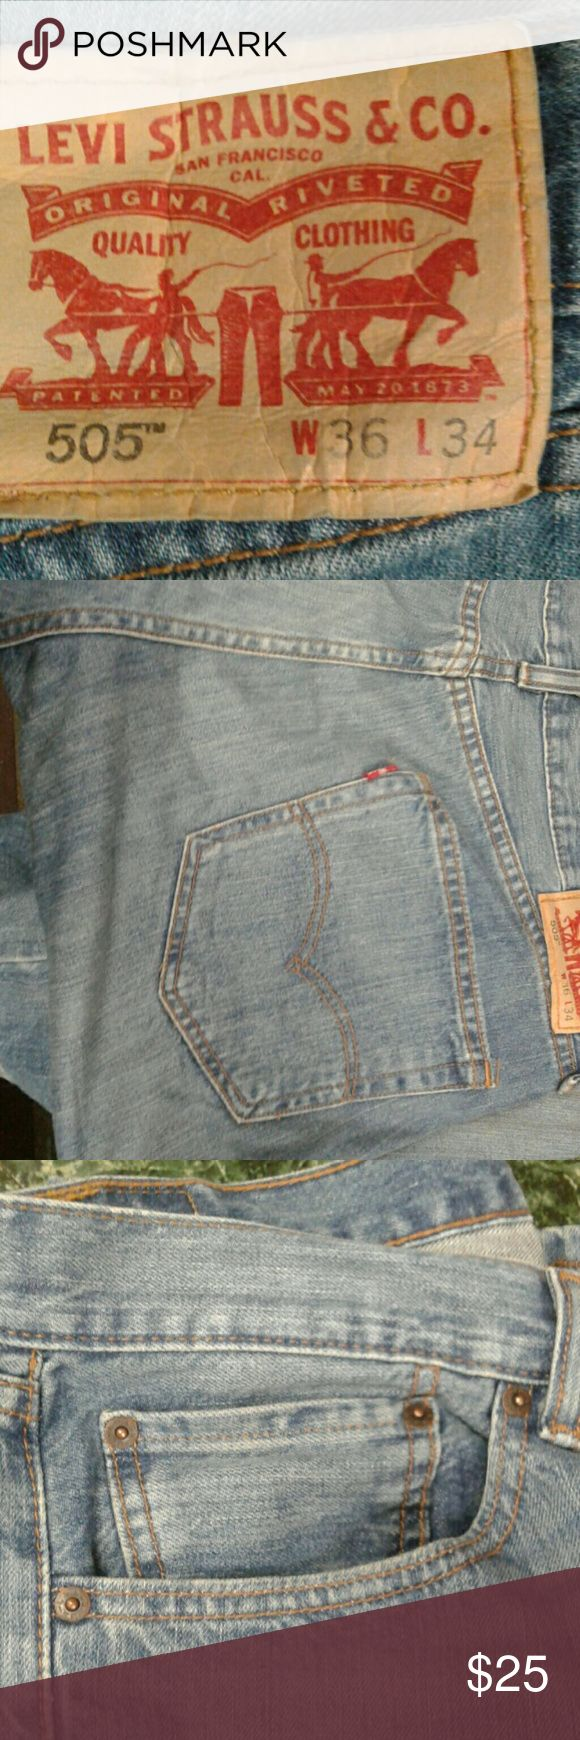 Levi 505 jeans 36/34 Comfy jeans faded in all the right places! Levi's Jeans Straight